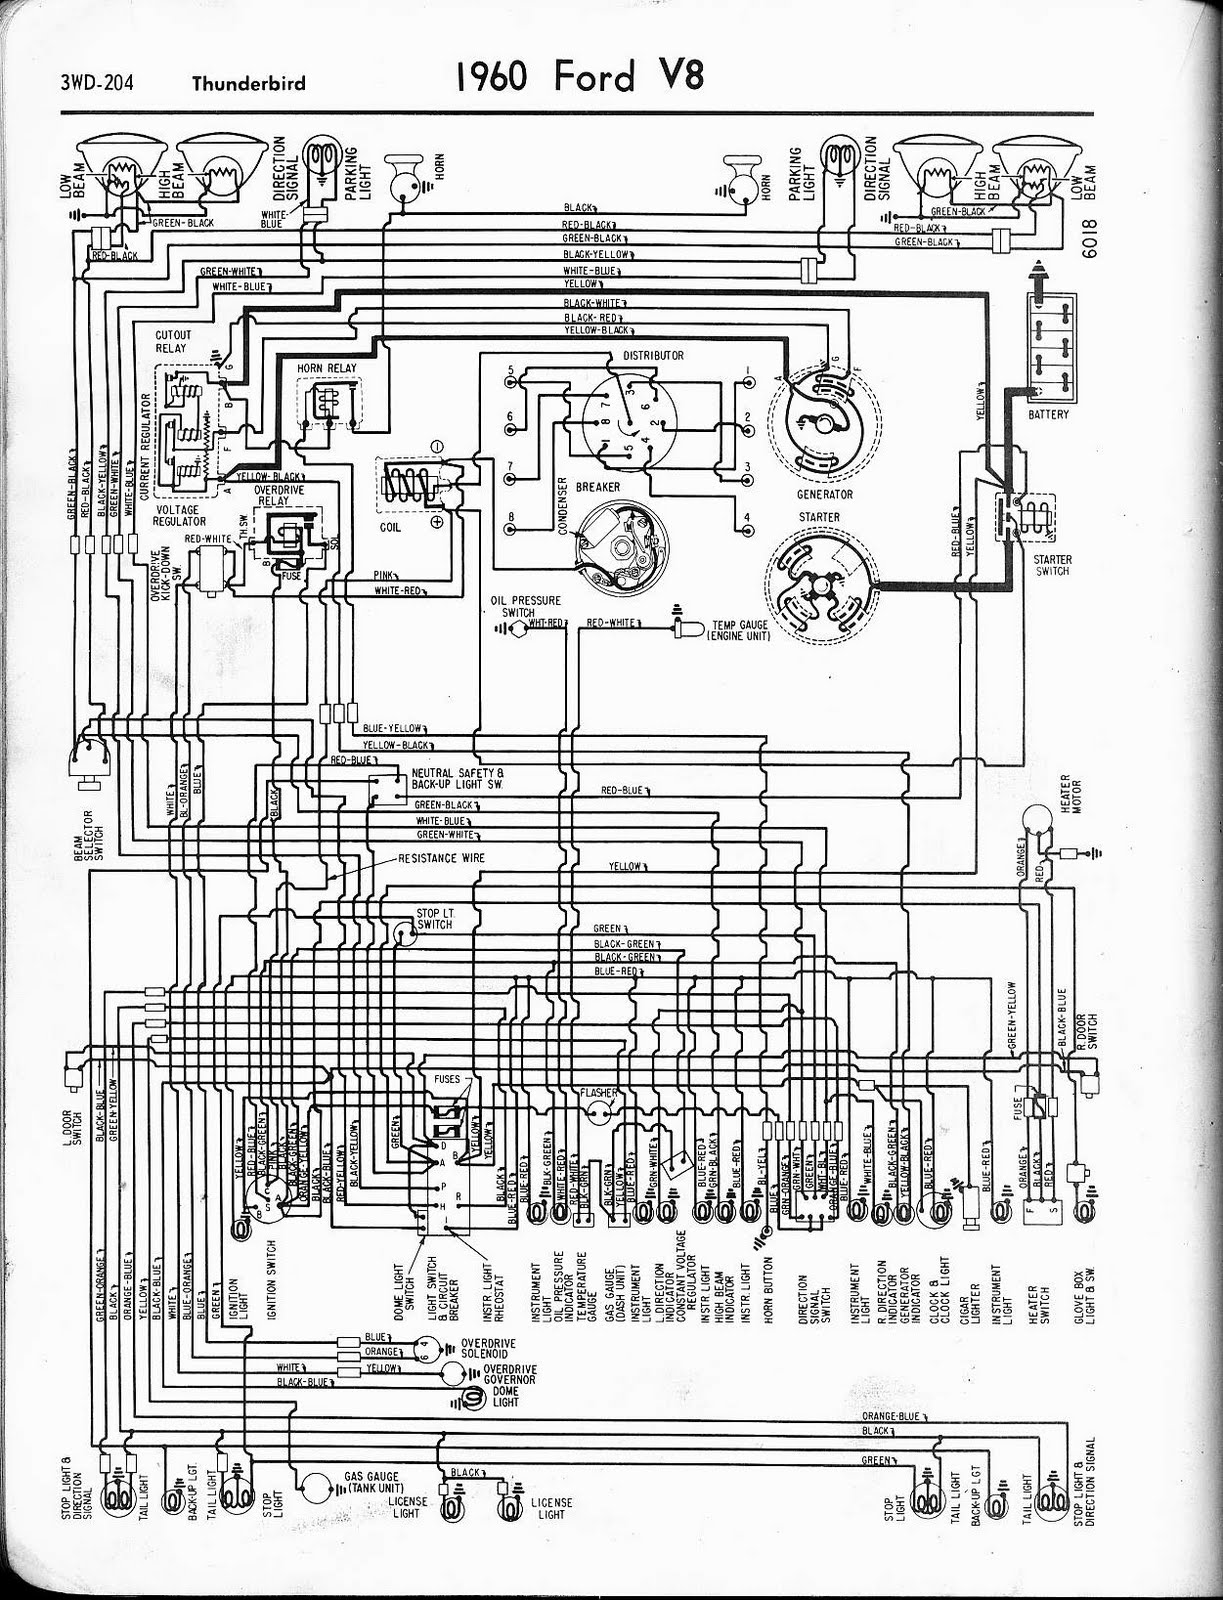 1965 thunderbird wiring diagram - wiring diagram schematic way-store -  way-store.aliceviola.it  aliceviola.it